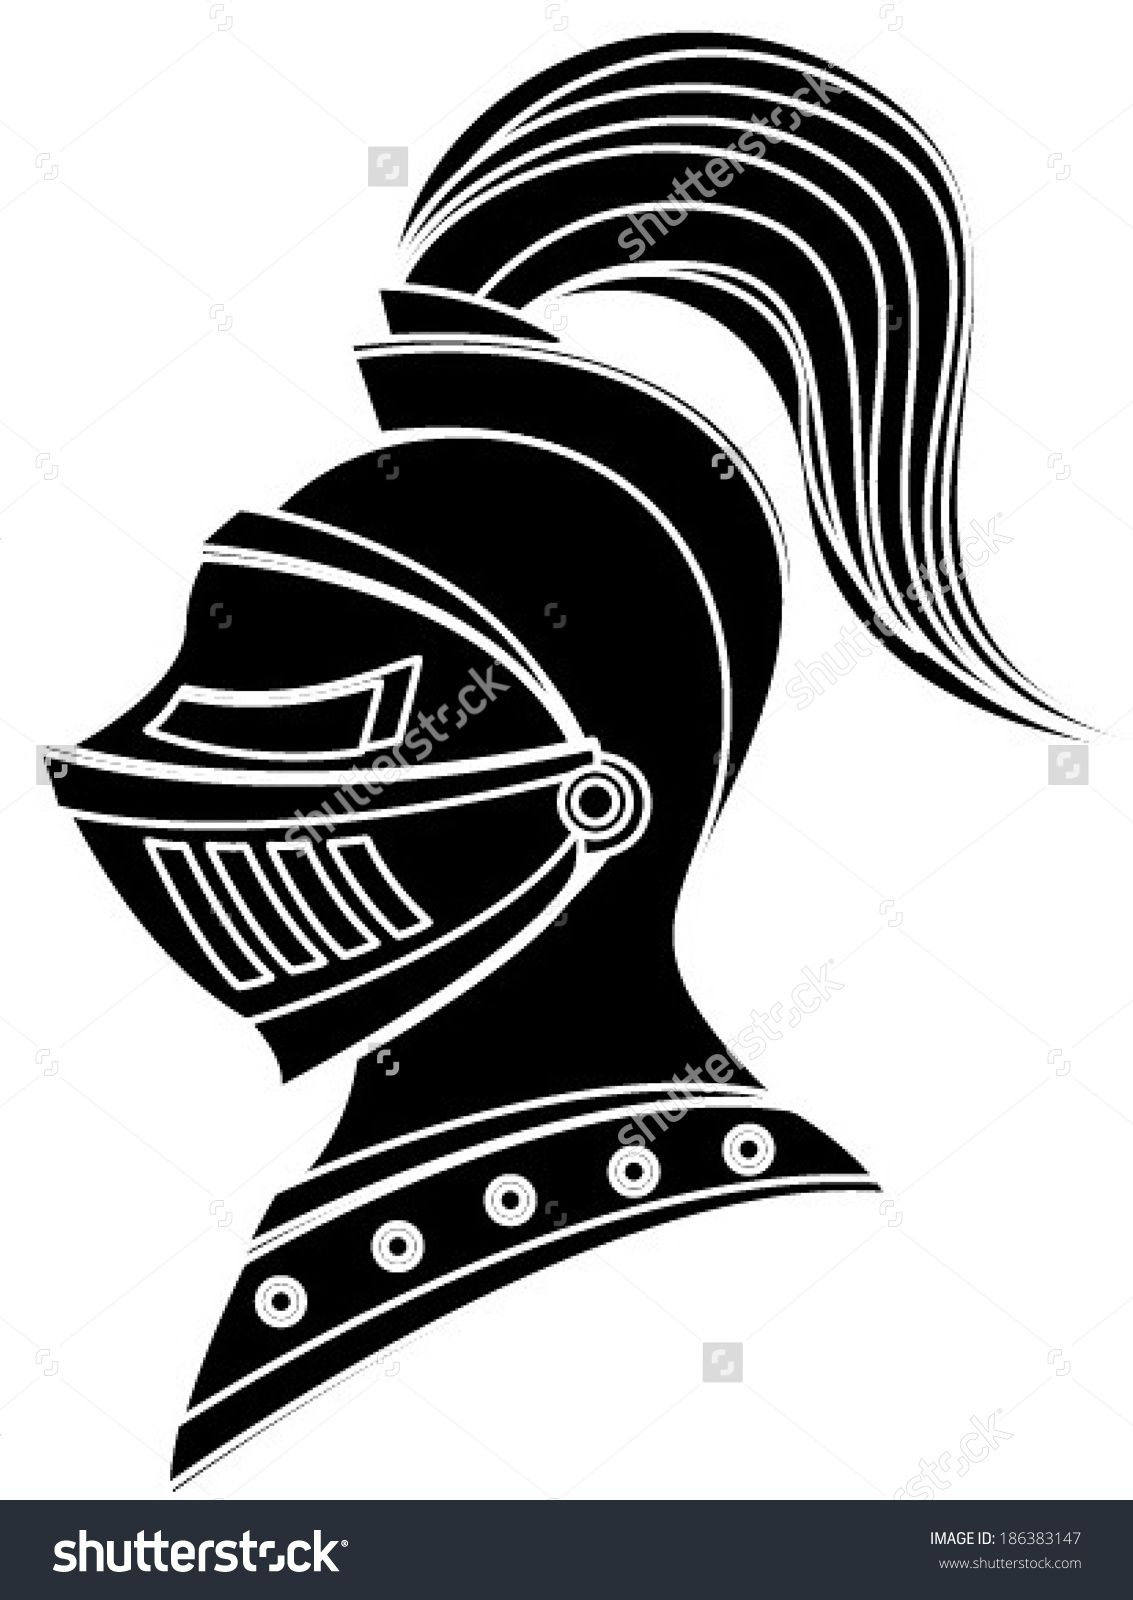 knight helmet silhouette black and white clipart